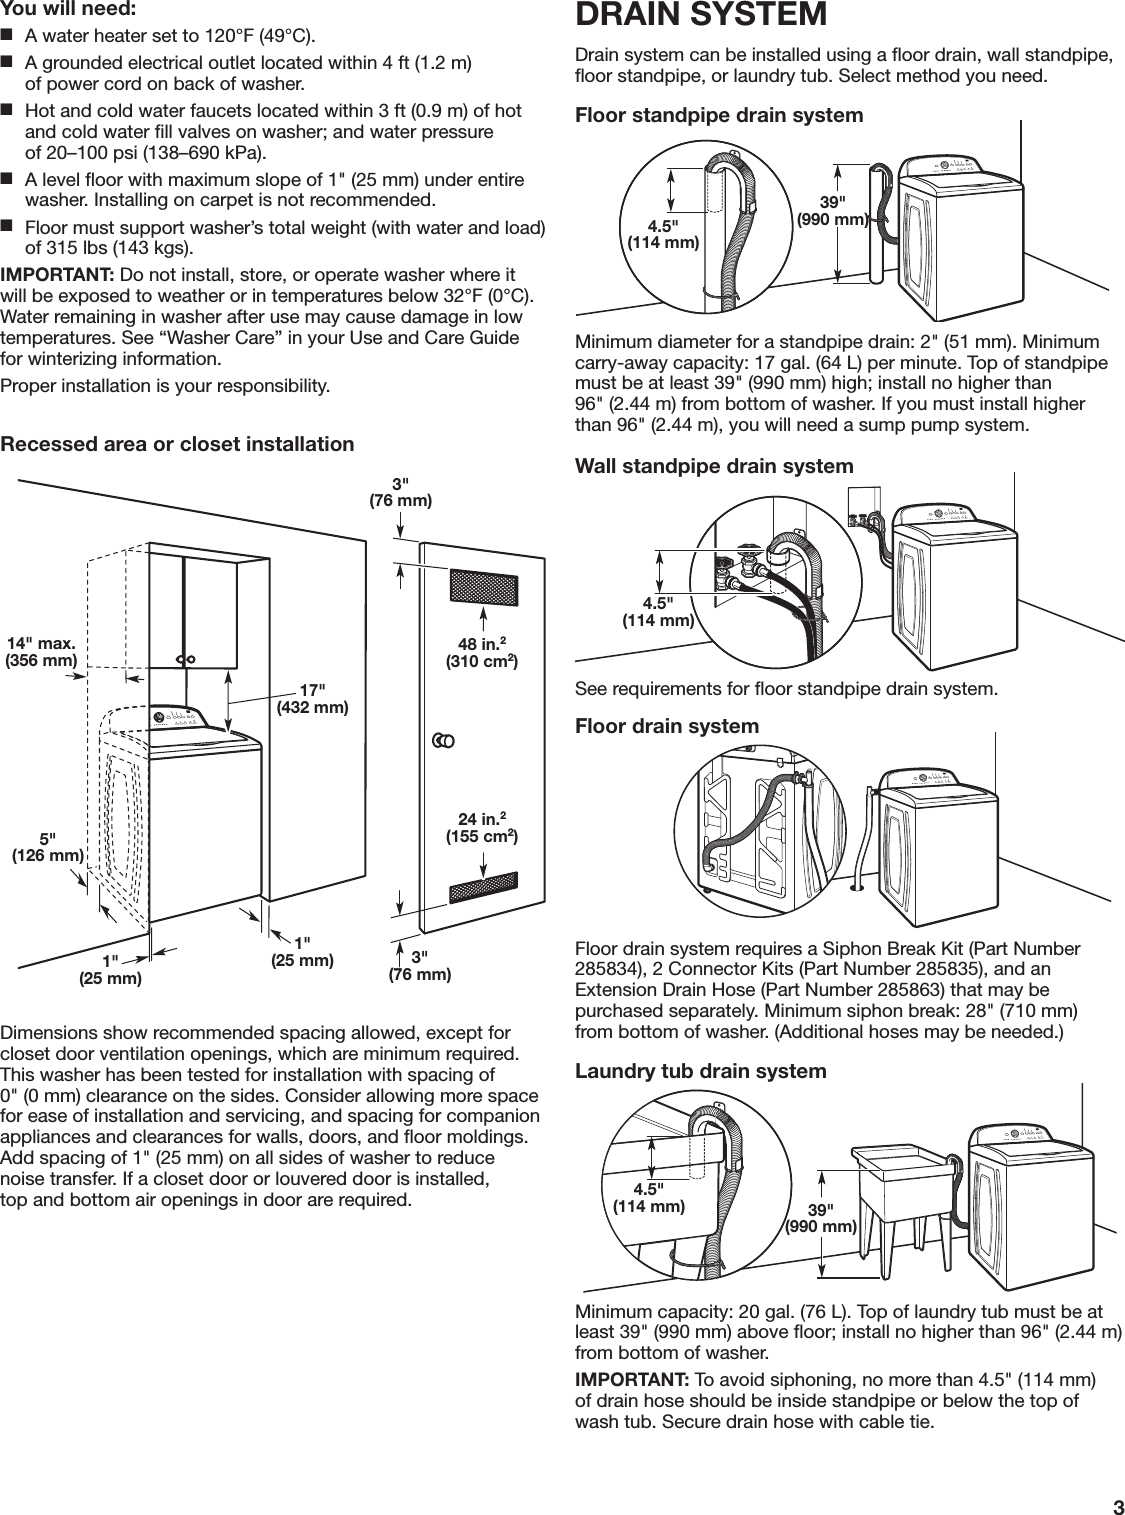 Whirlpool 2dwtw4845ew1 User Manual Washer Manuals And Guides 1707509l Schematic Page 3 Of 8